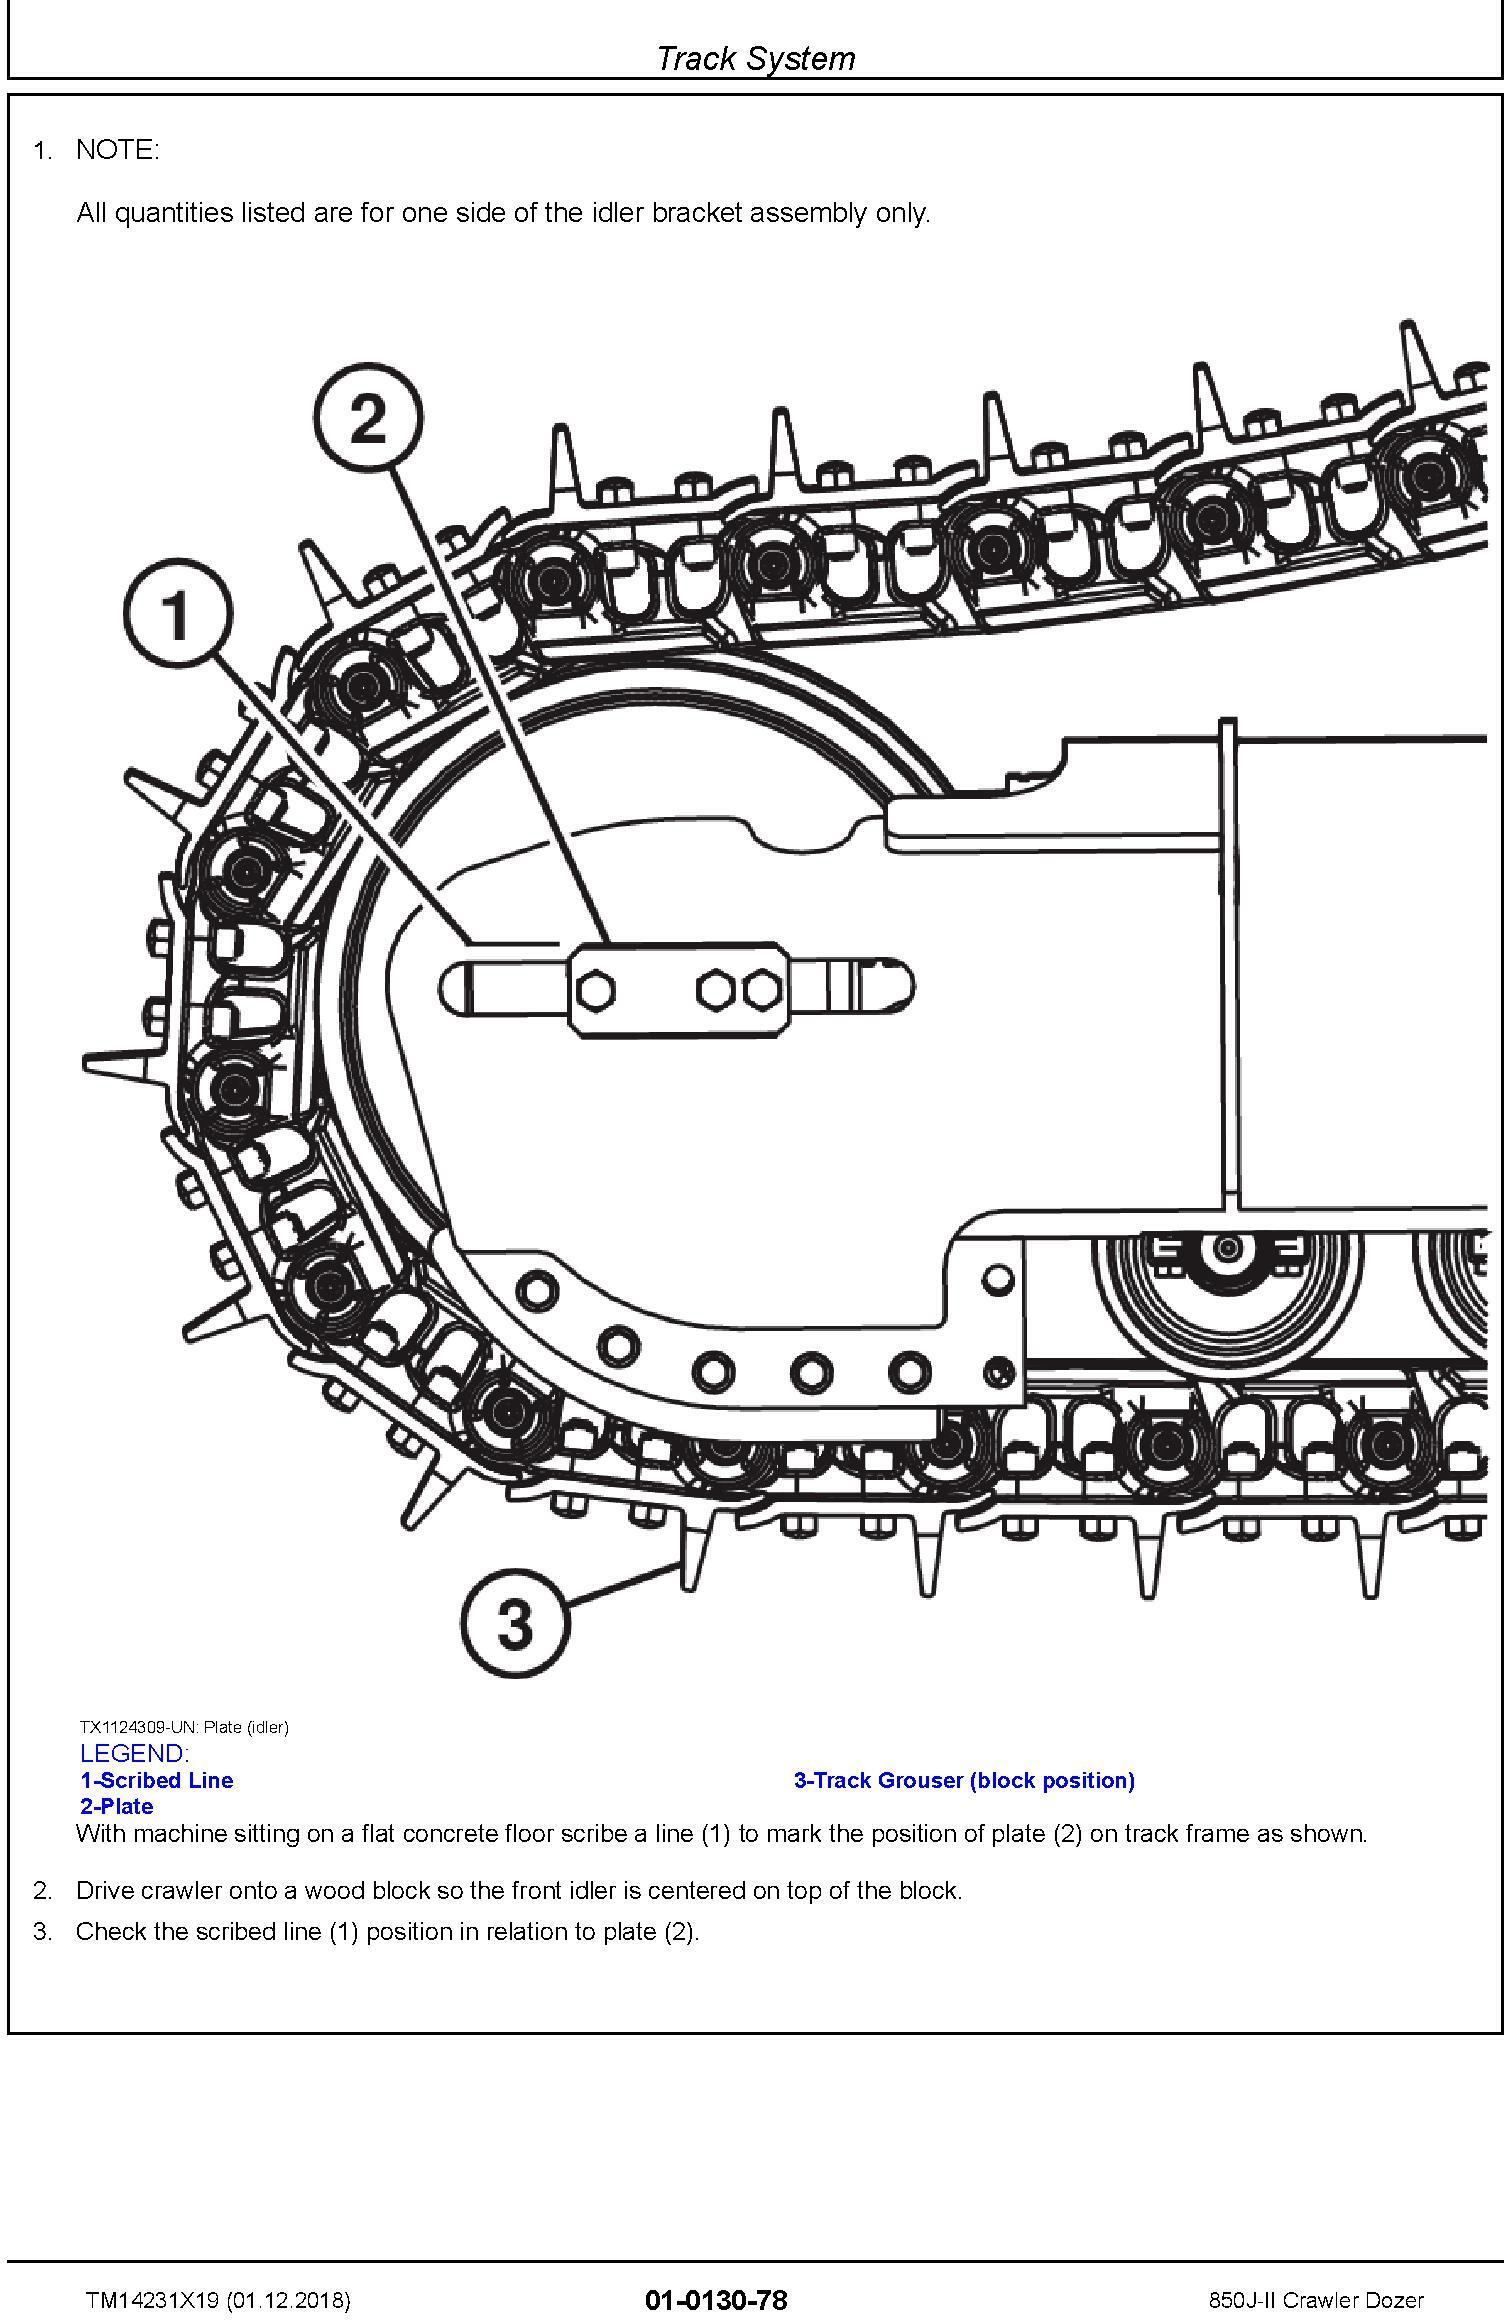 John Deere 850J-II (SN. D306725-323043) Crawler Dozer Service Repair Technical Manual (TM14231X19) - 3